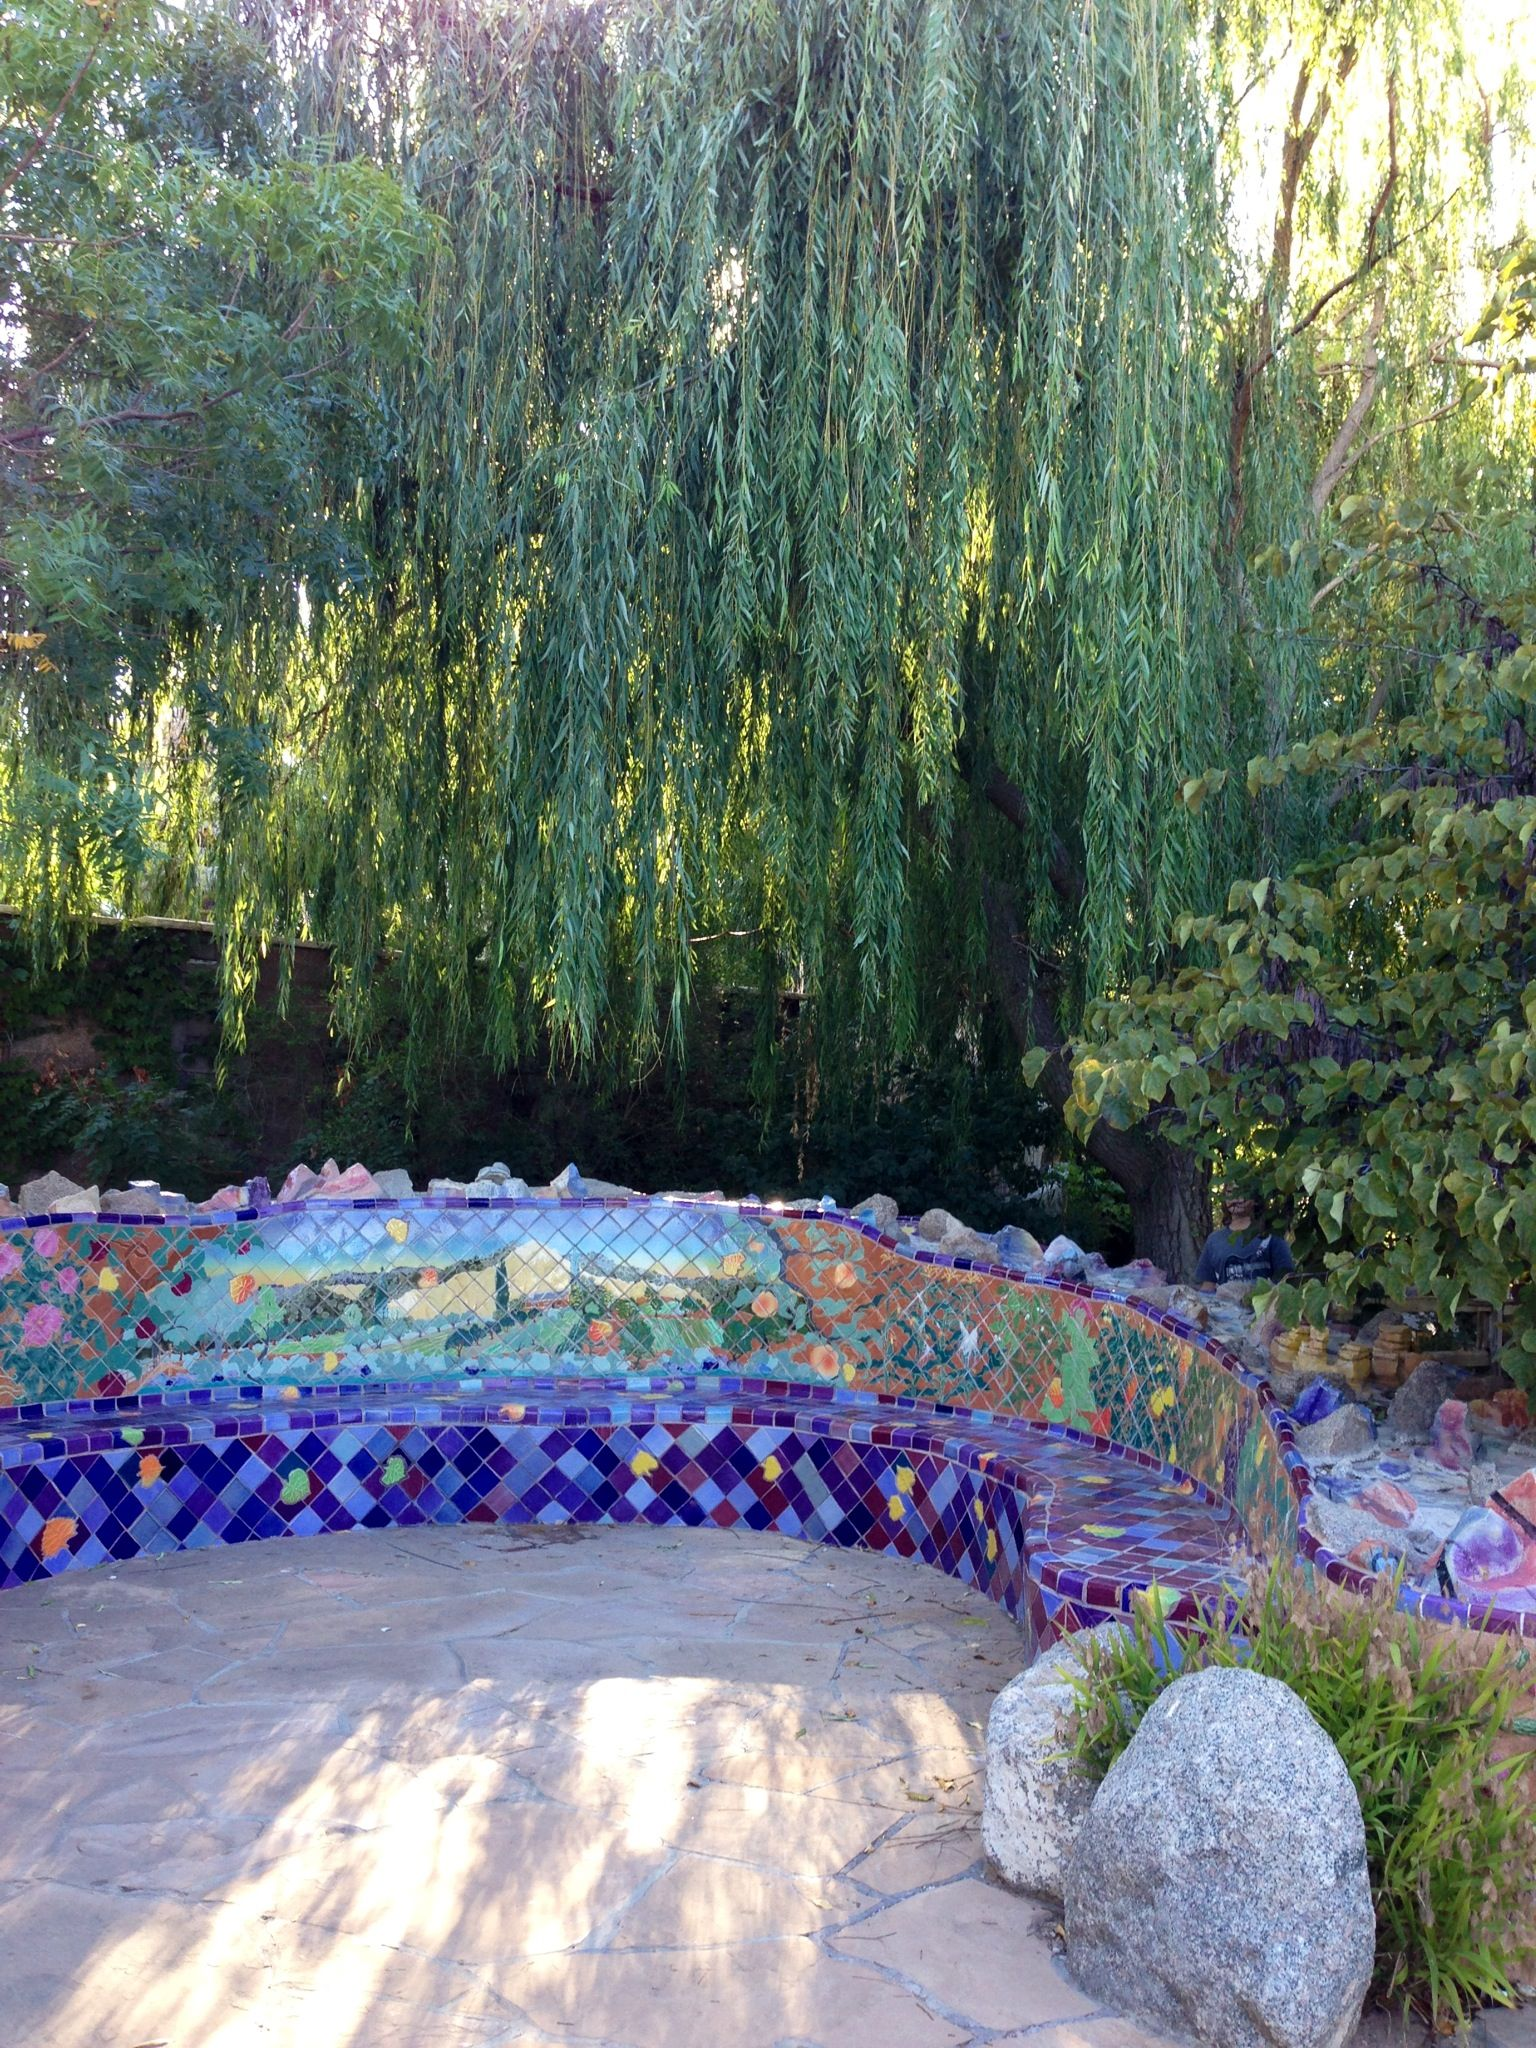 mosaic tile bench with weeping willow ABQ BioPark Botanical